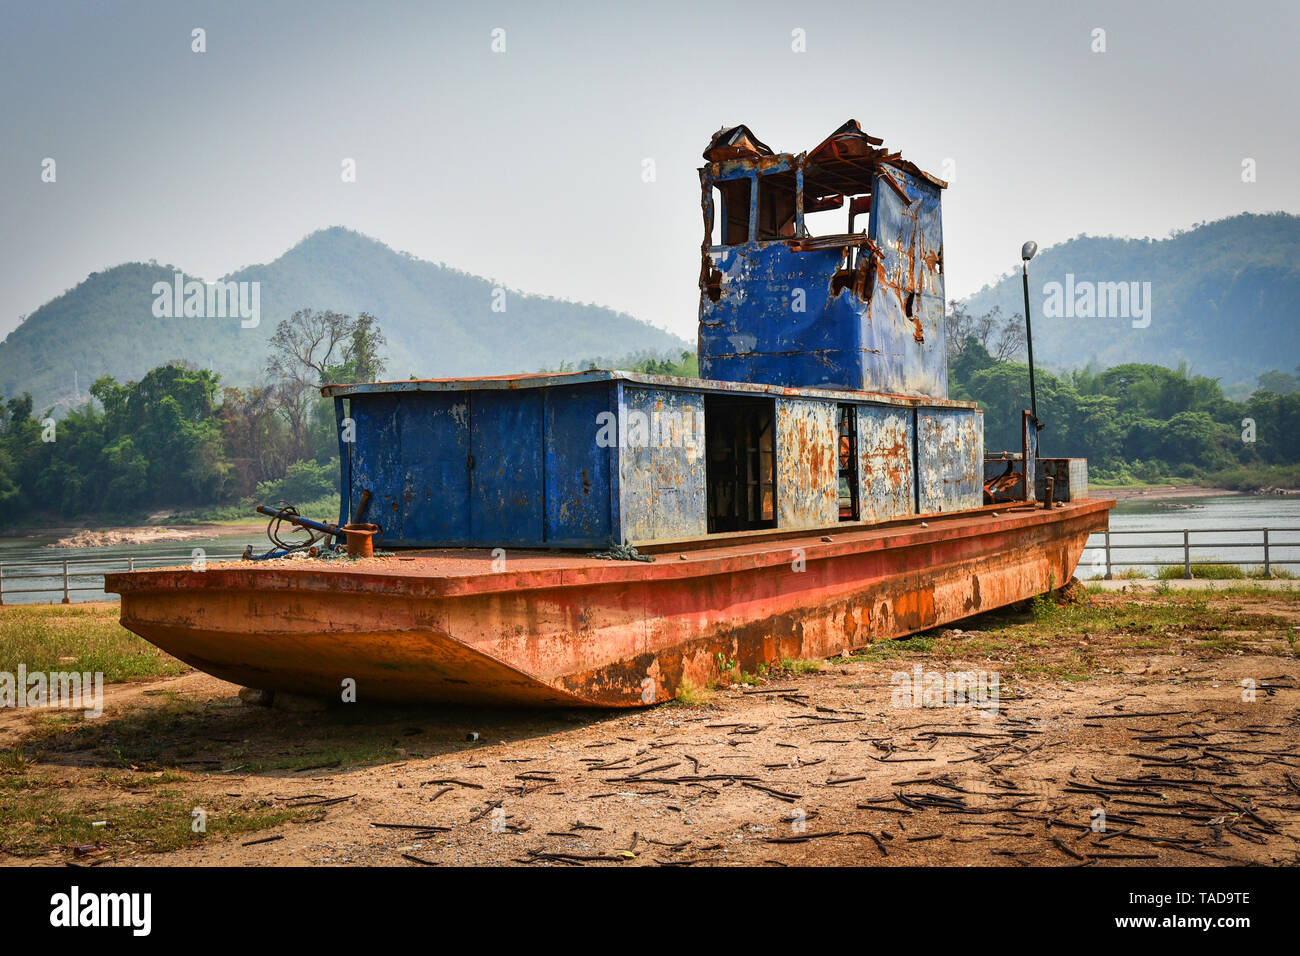 old boat on the riverside / ancient ship decay steel with rust metal iron - Stock Image